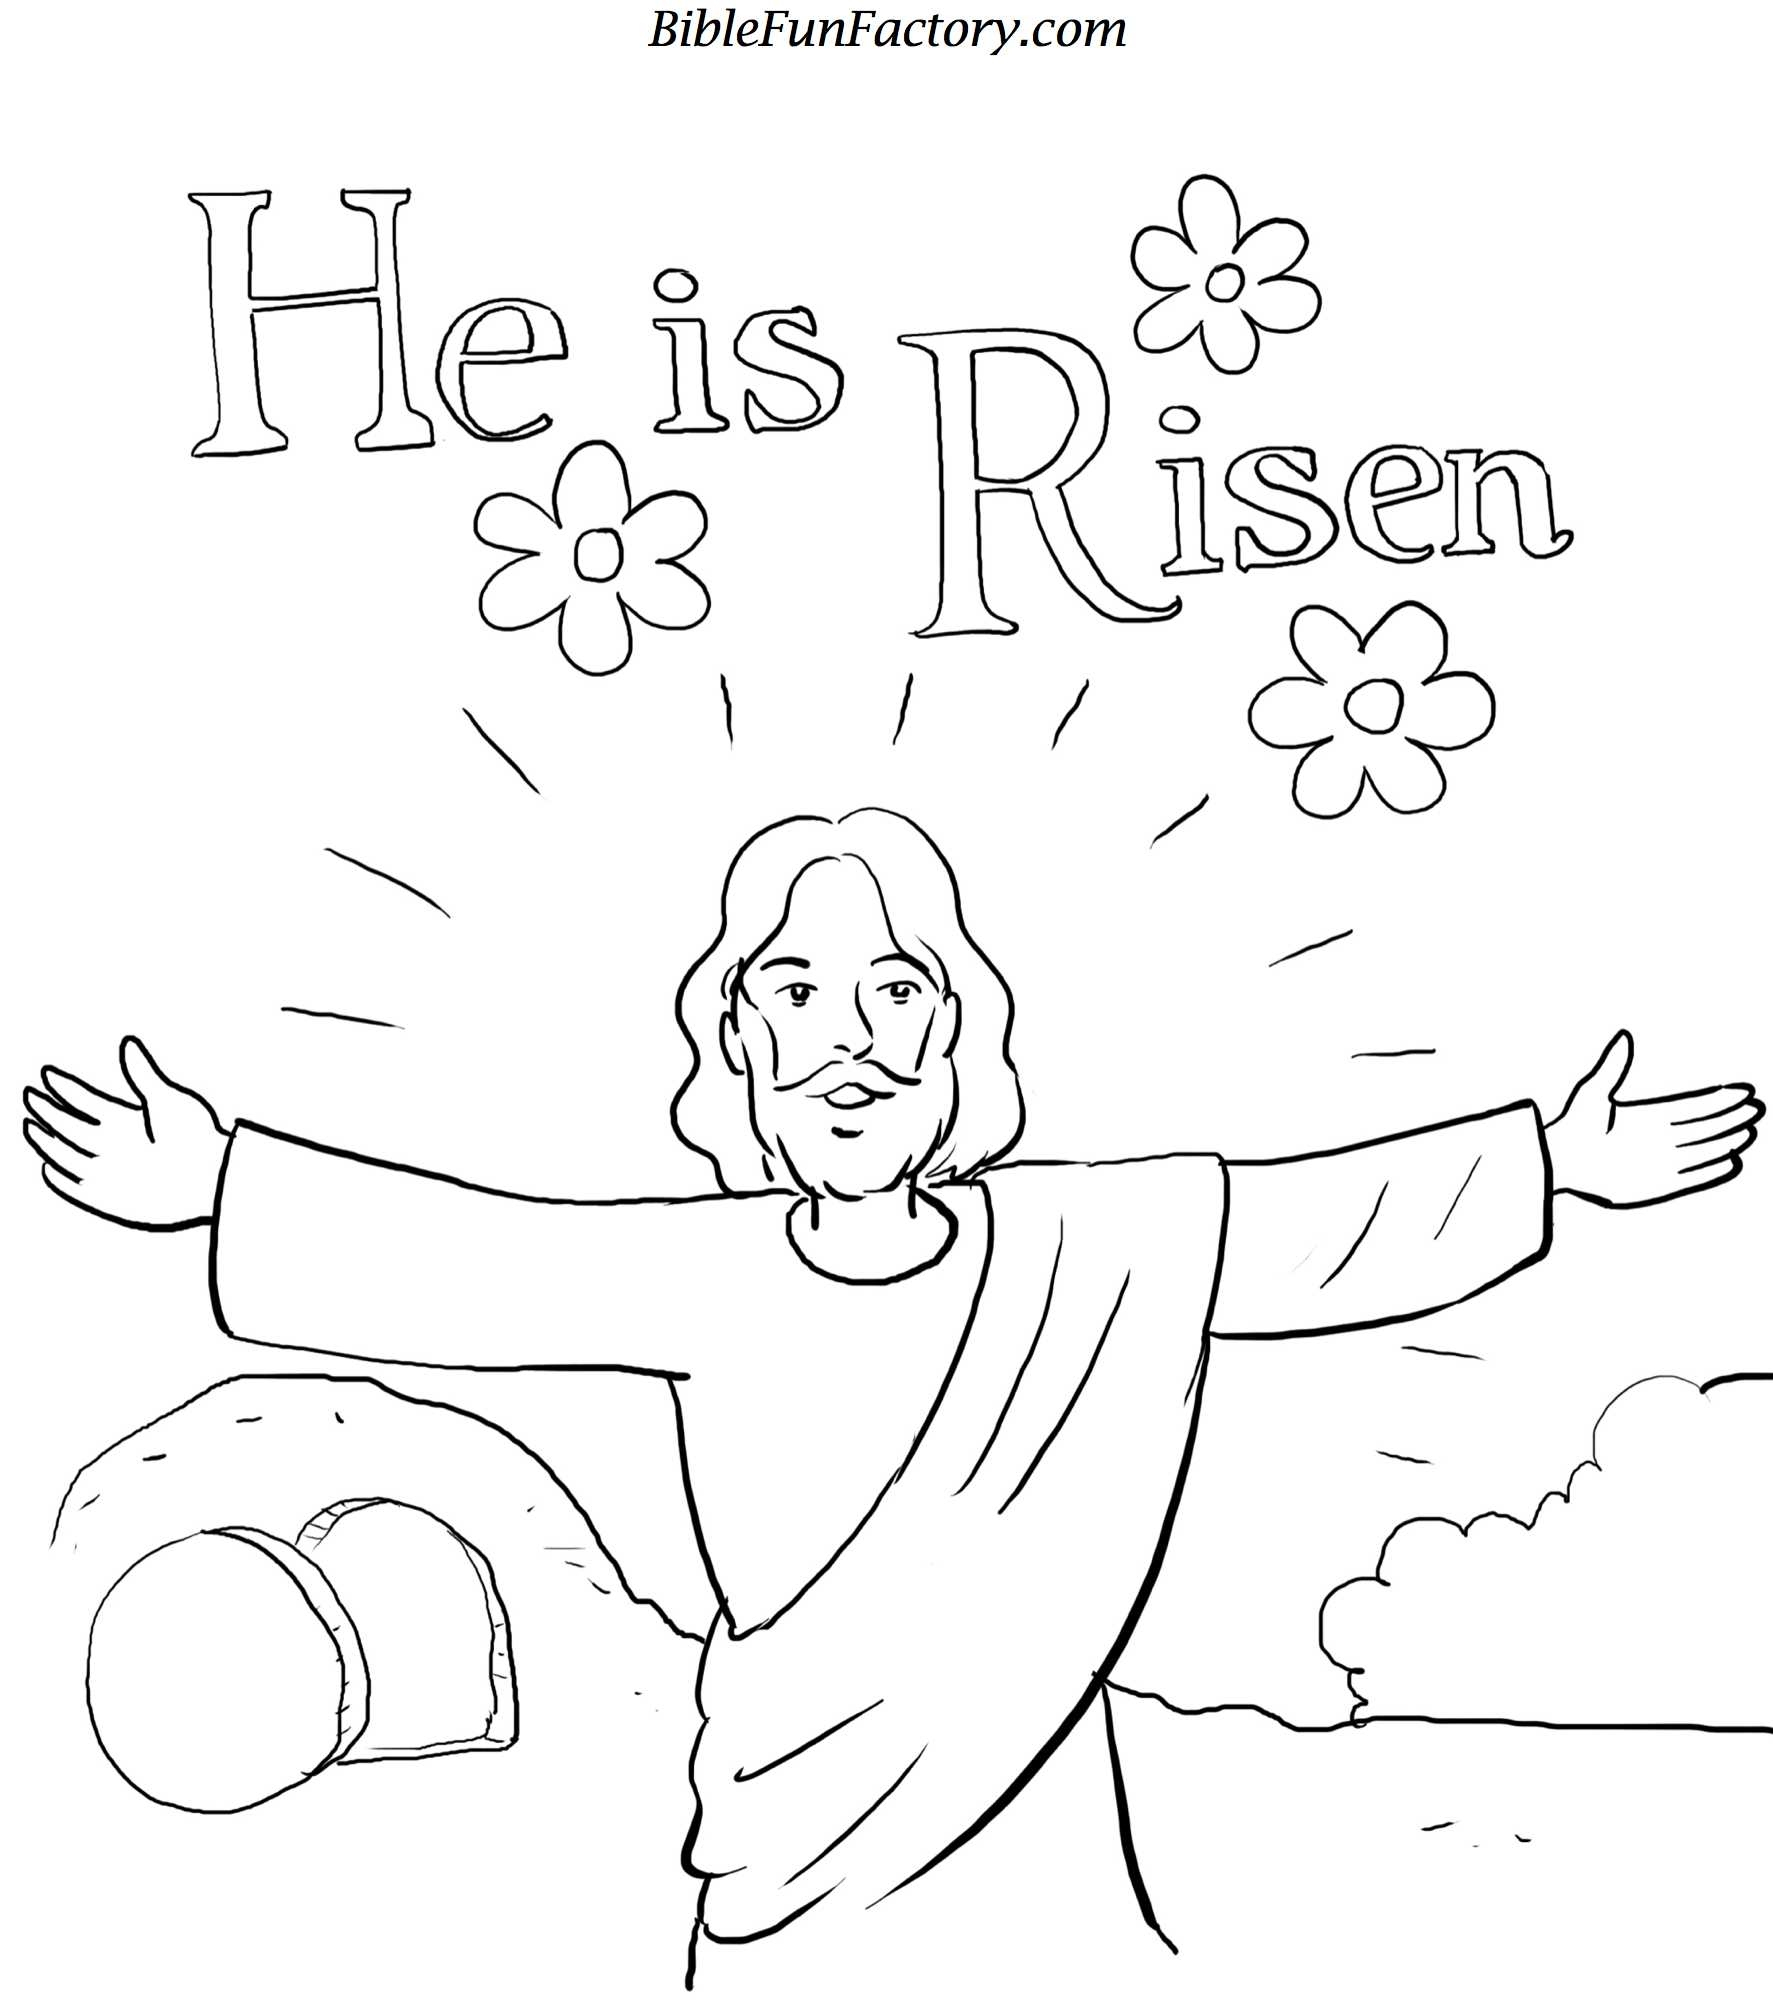 Bible Coloring Pages for Kids Luxury Bible Coloring Pages for Sunday Gallery Of 28 Sunday School Coloring Pages for Preschoolers Jesus Loves Gallery